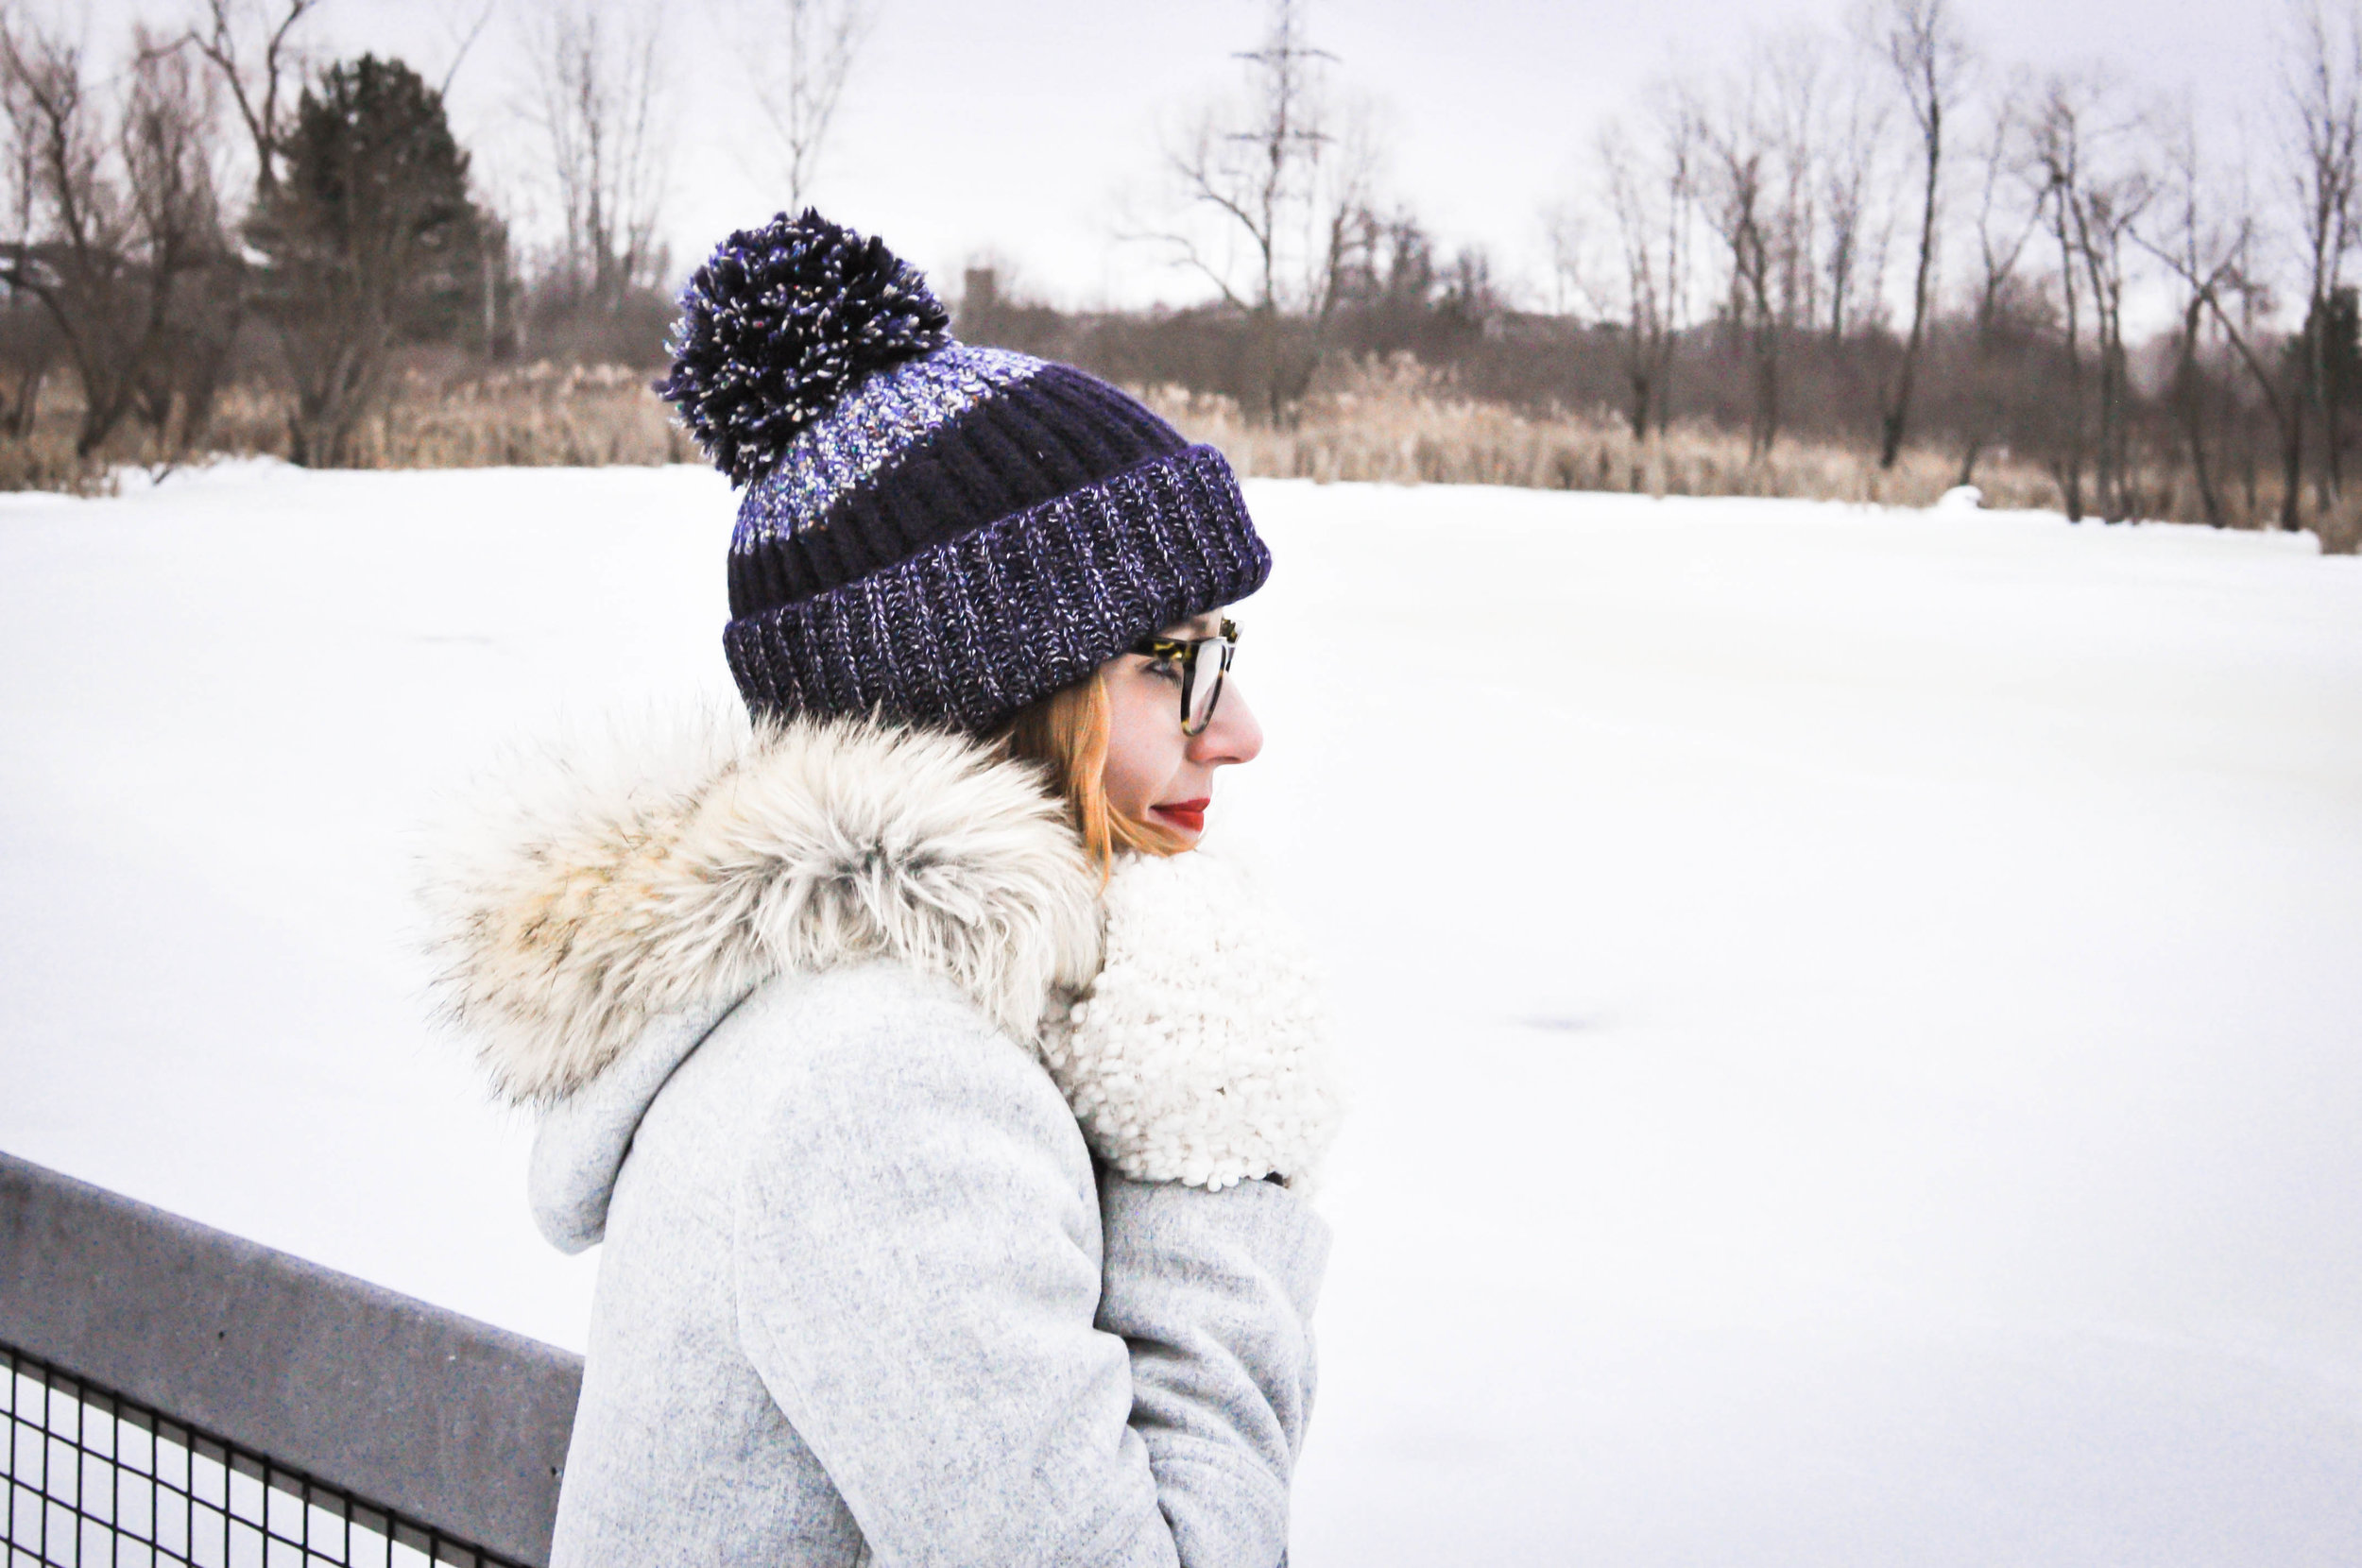 Woman in winter clothes in the snow